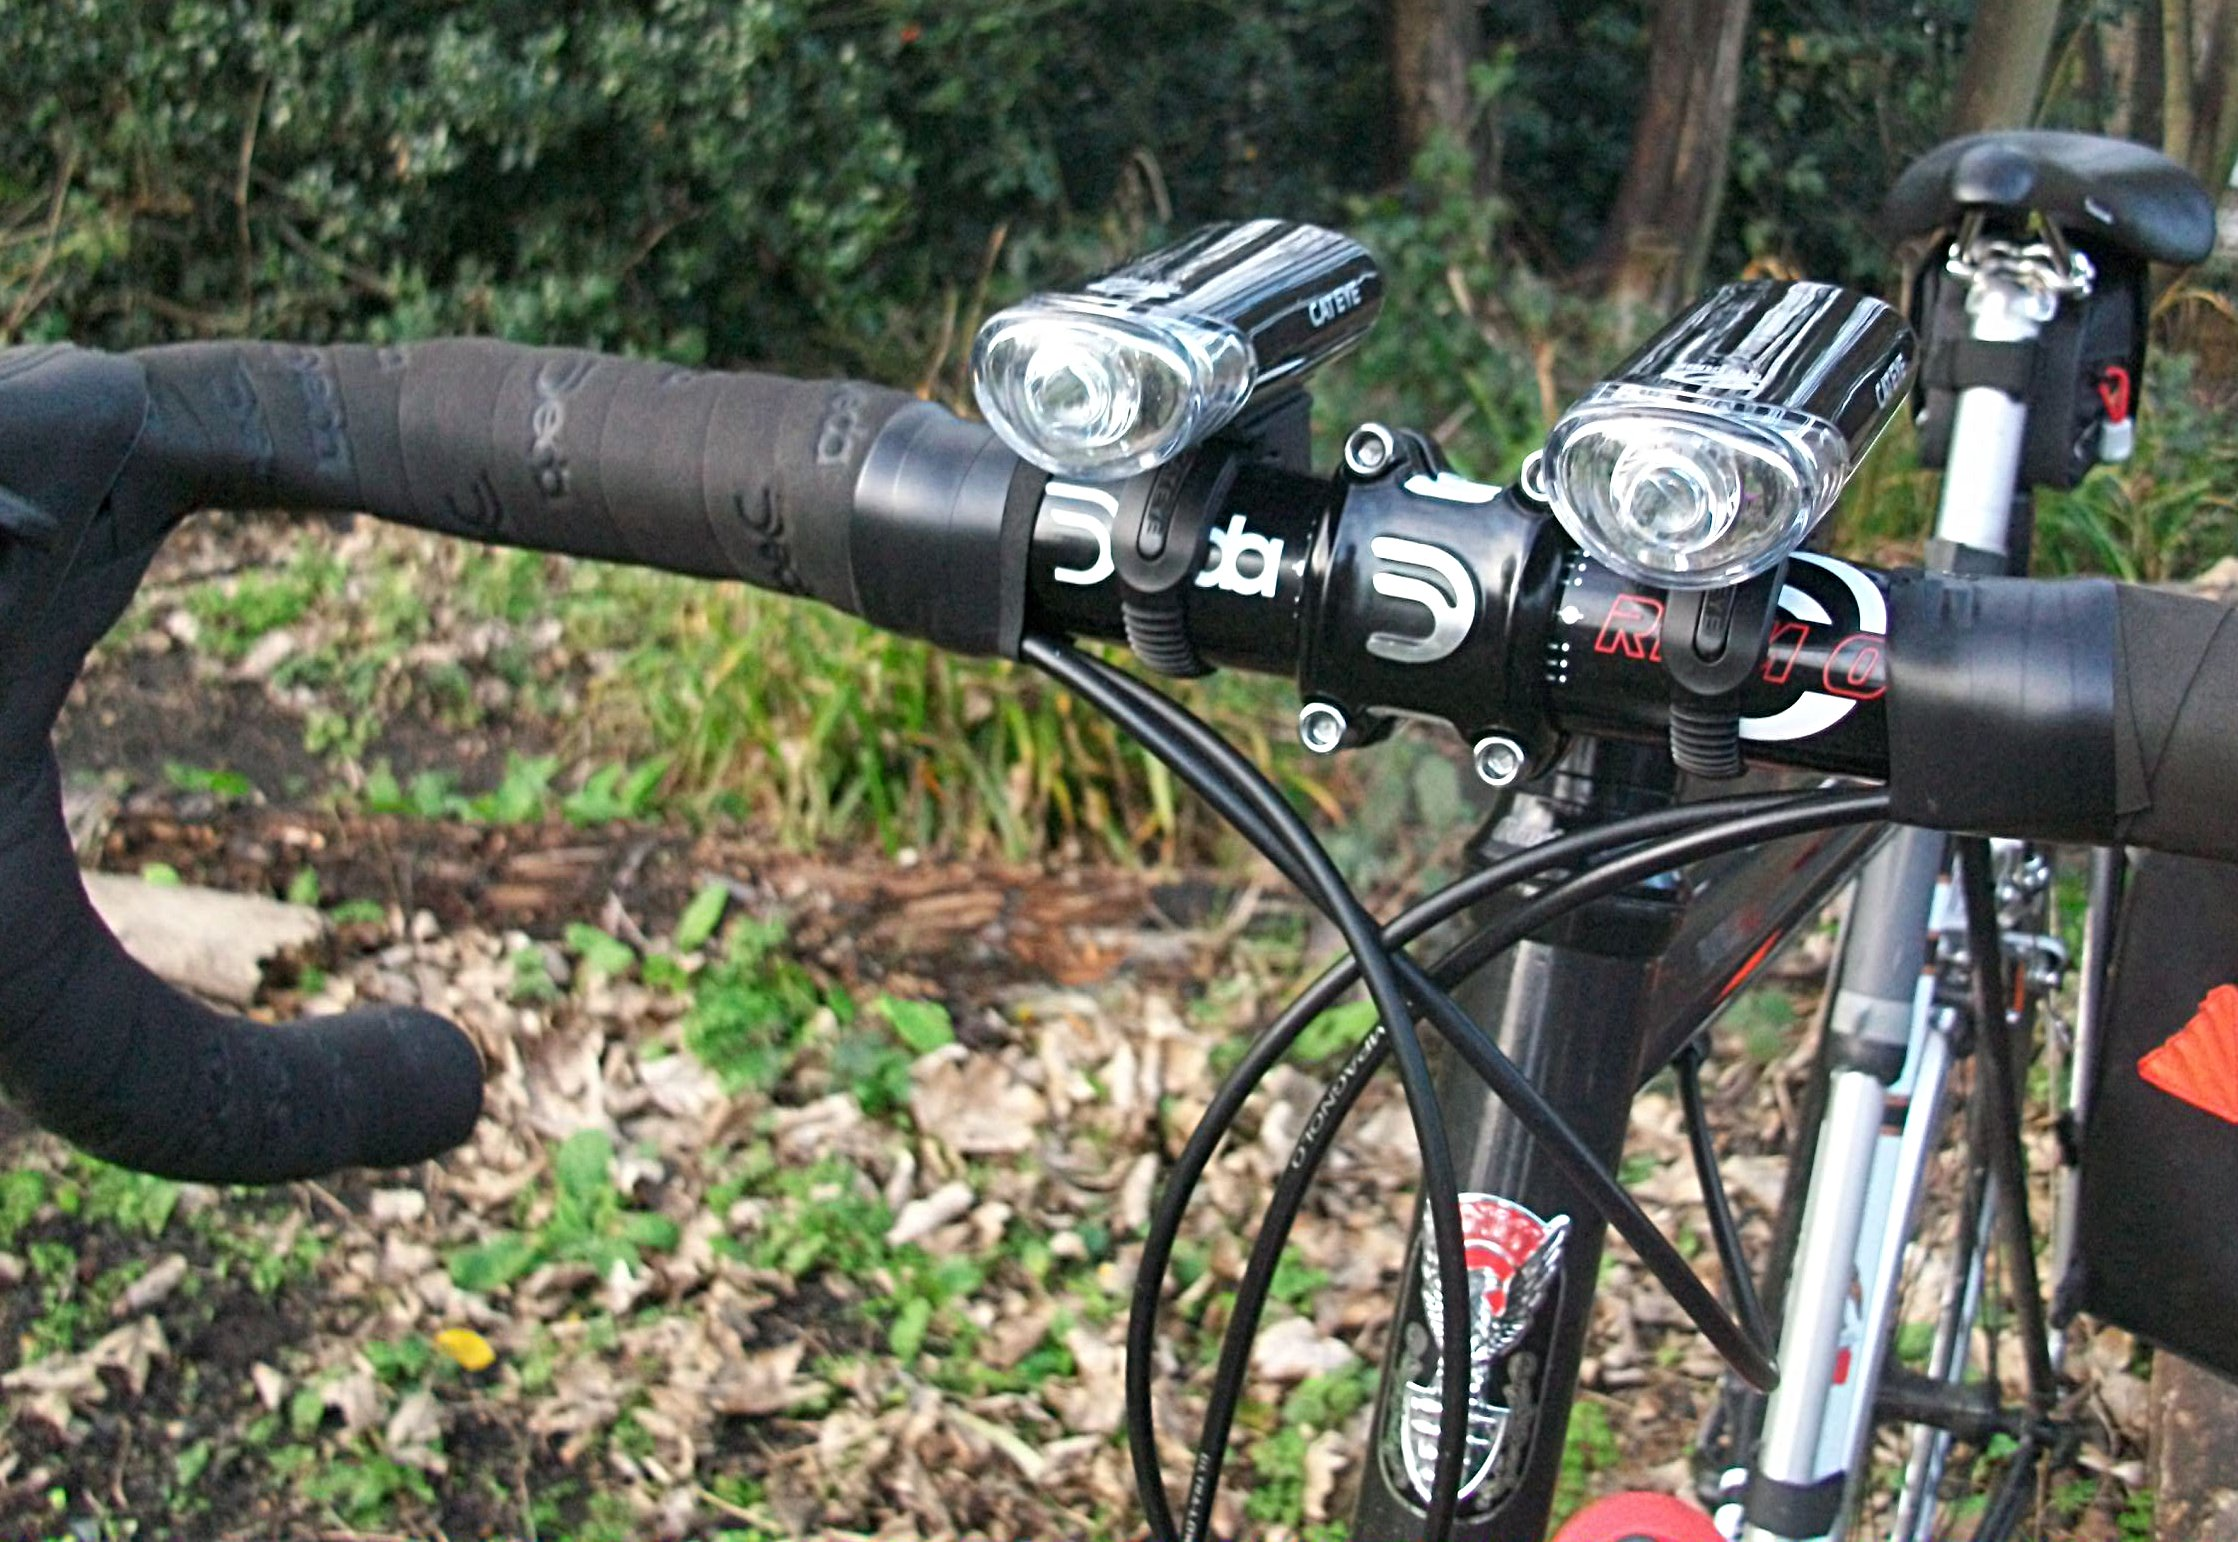 A pair of handlebars with lights attached.